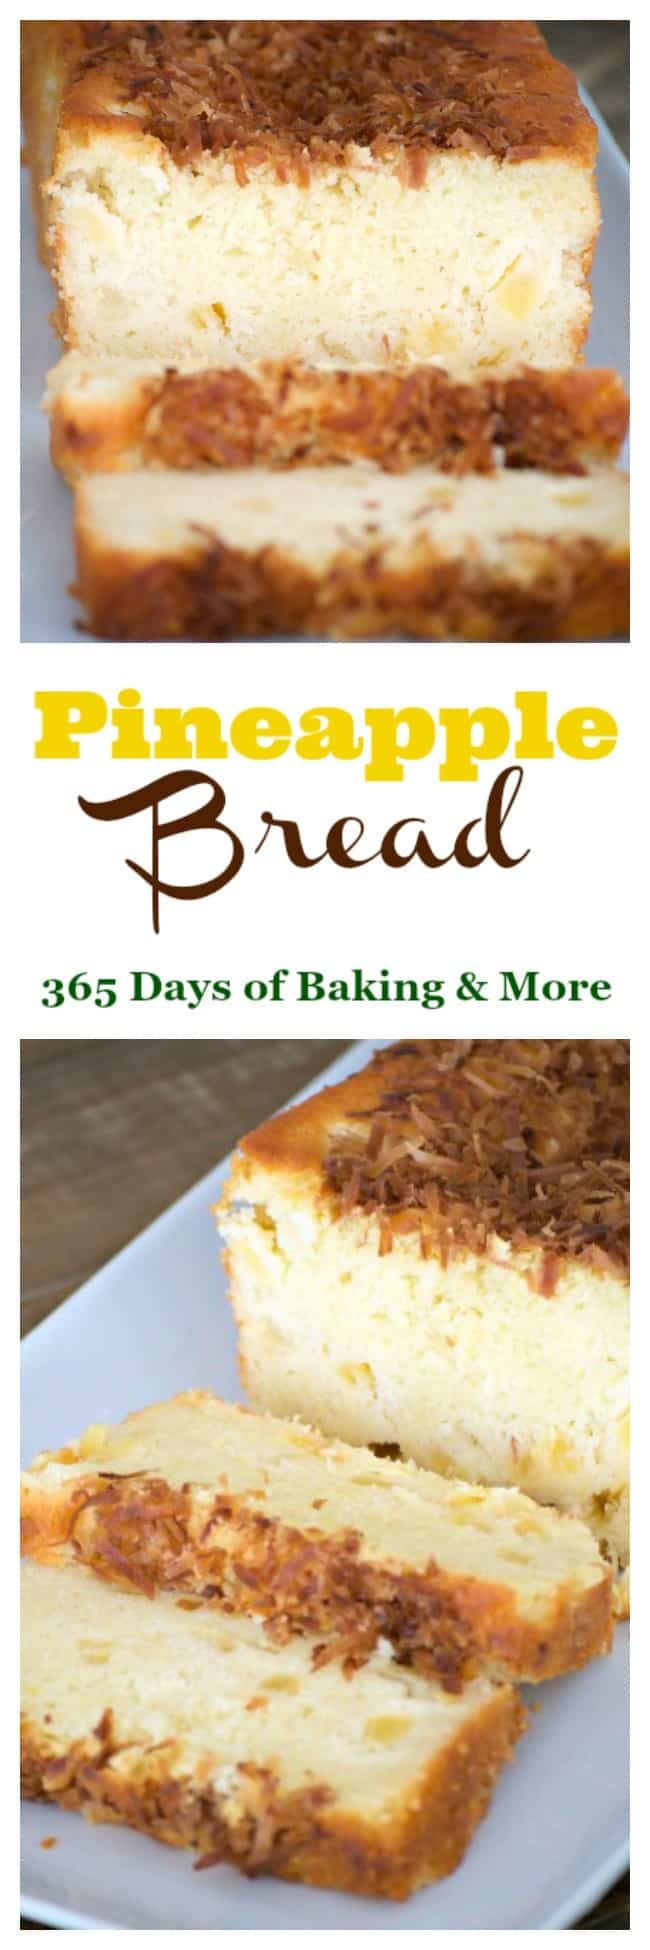 This Pineapple Bread is a great treat in the morning with your cup of coffee and the toasted coconut on the top helps you feel like you're in the tropics!